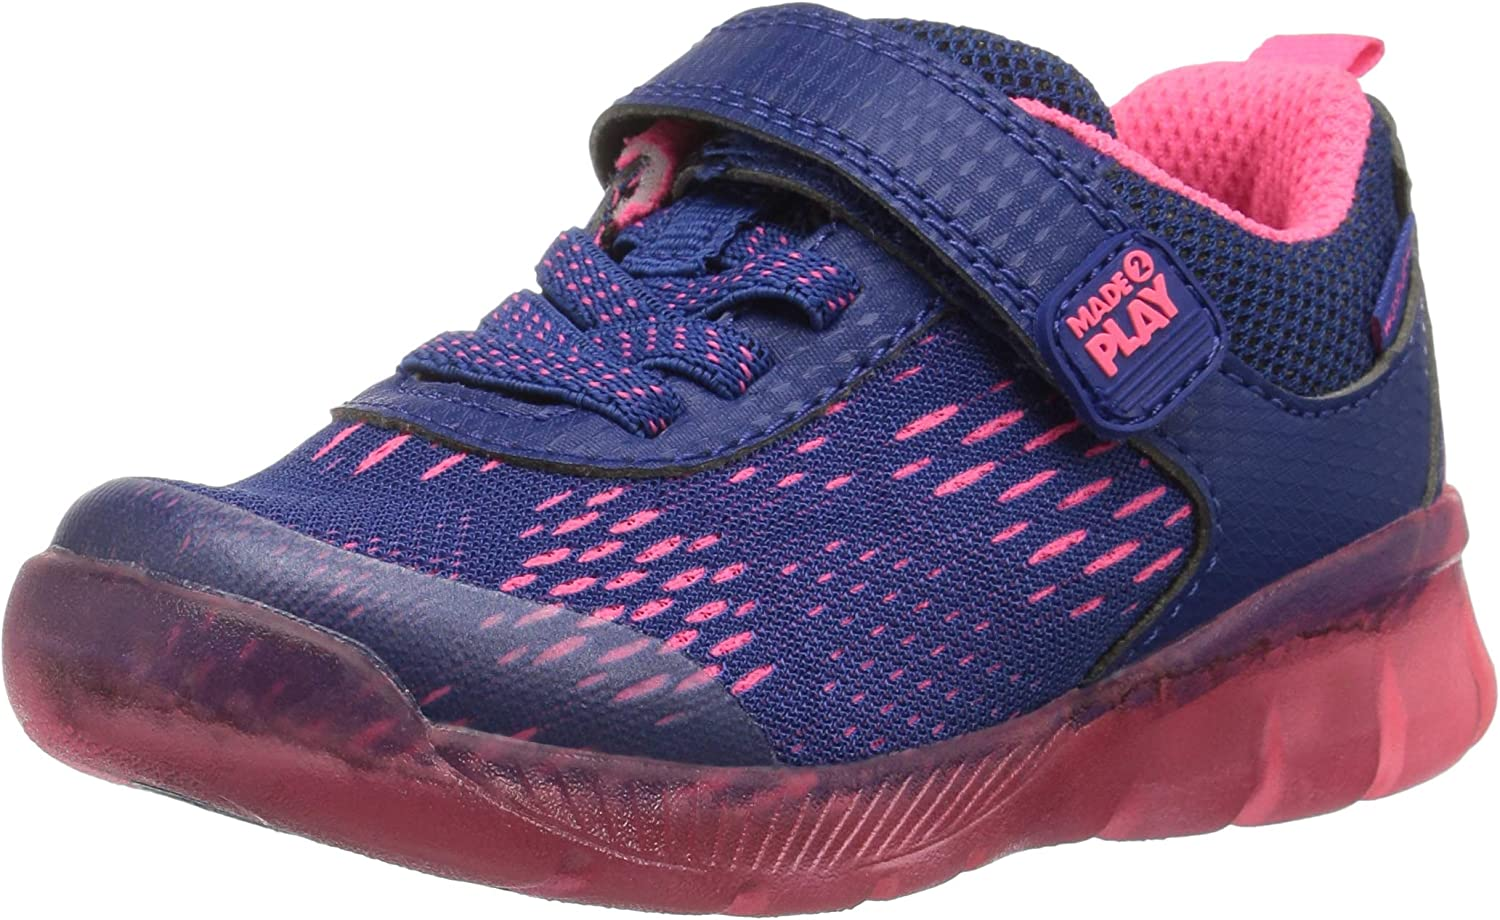 Stride Rite Girl's Made 2 Play Lighted Neo Sneaker, Navy/Pink, 3 W US Little Kid